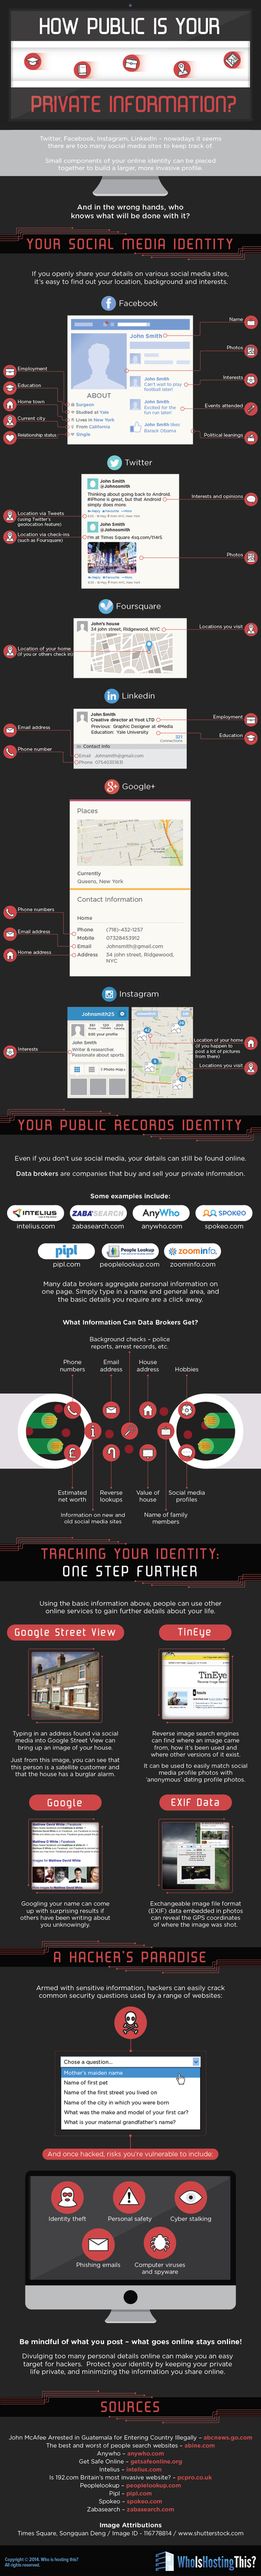 Your Social Data Might Not Be as Private as You Think [infographic] | SocialTimes | SocialMoMojo Web | Scoop.it